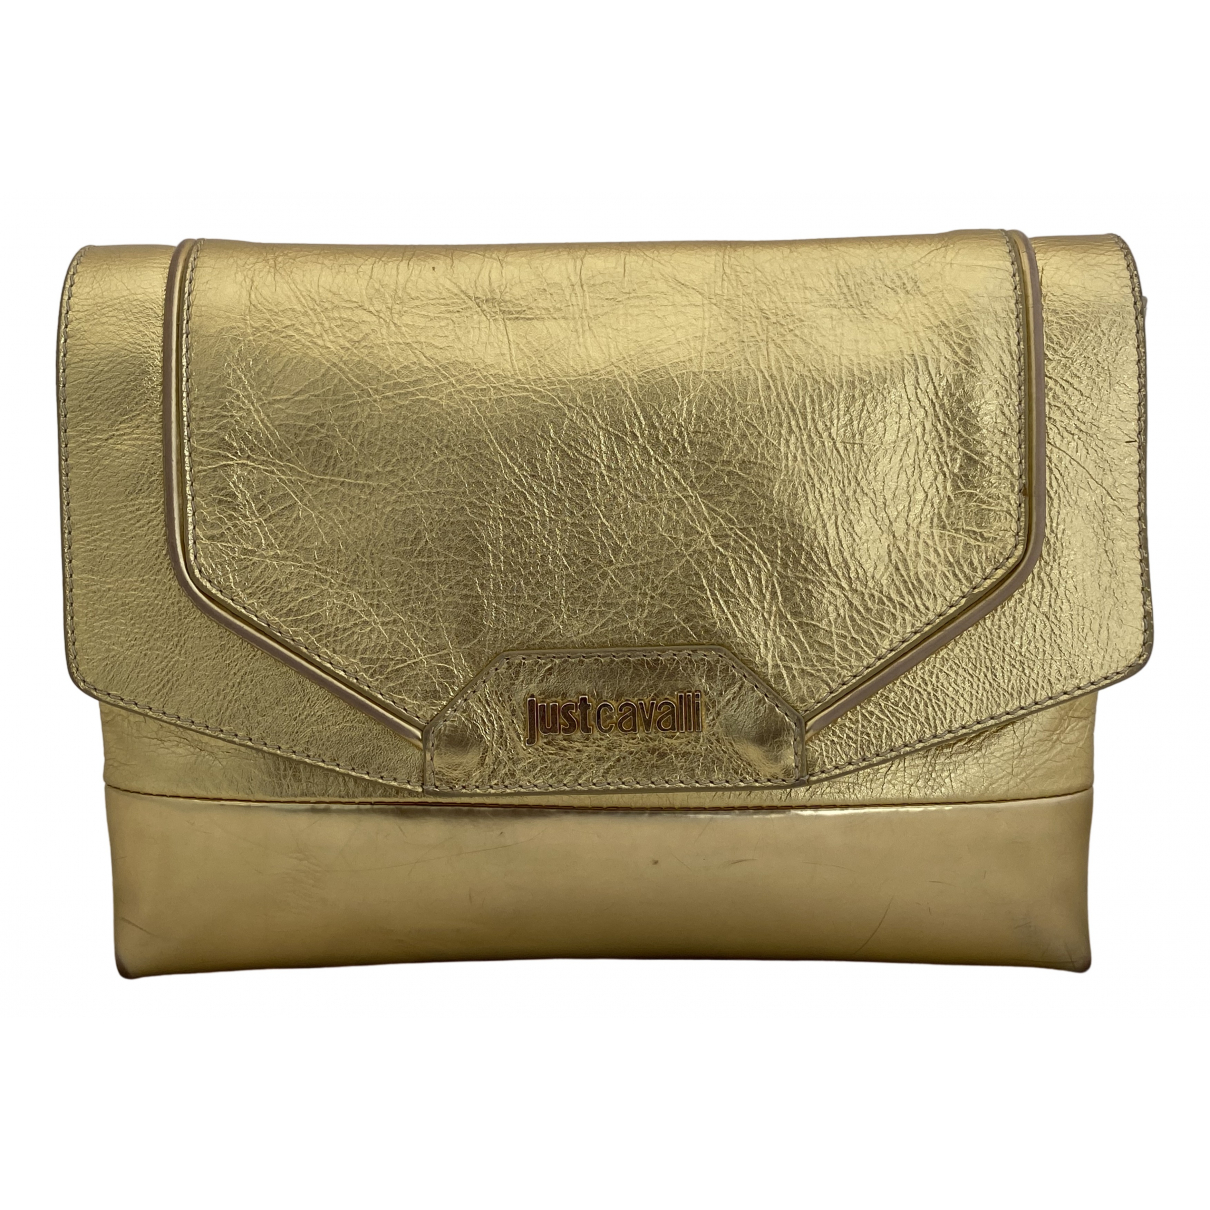 Just Cavalli N Gold Leather Clutch bag for Women N